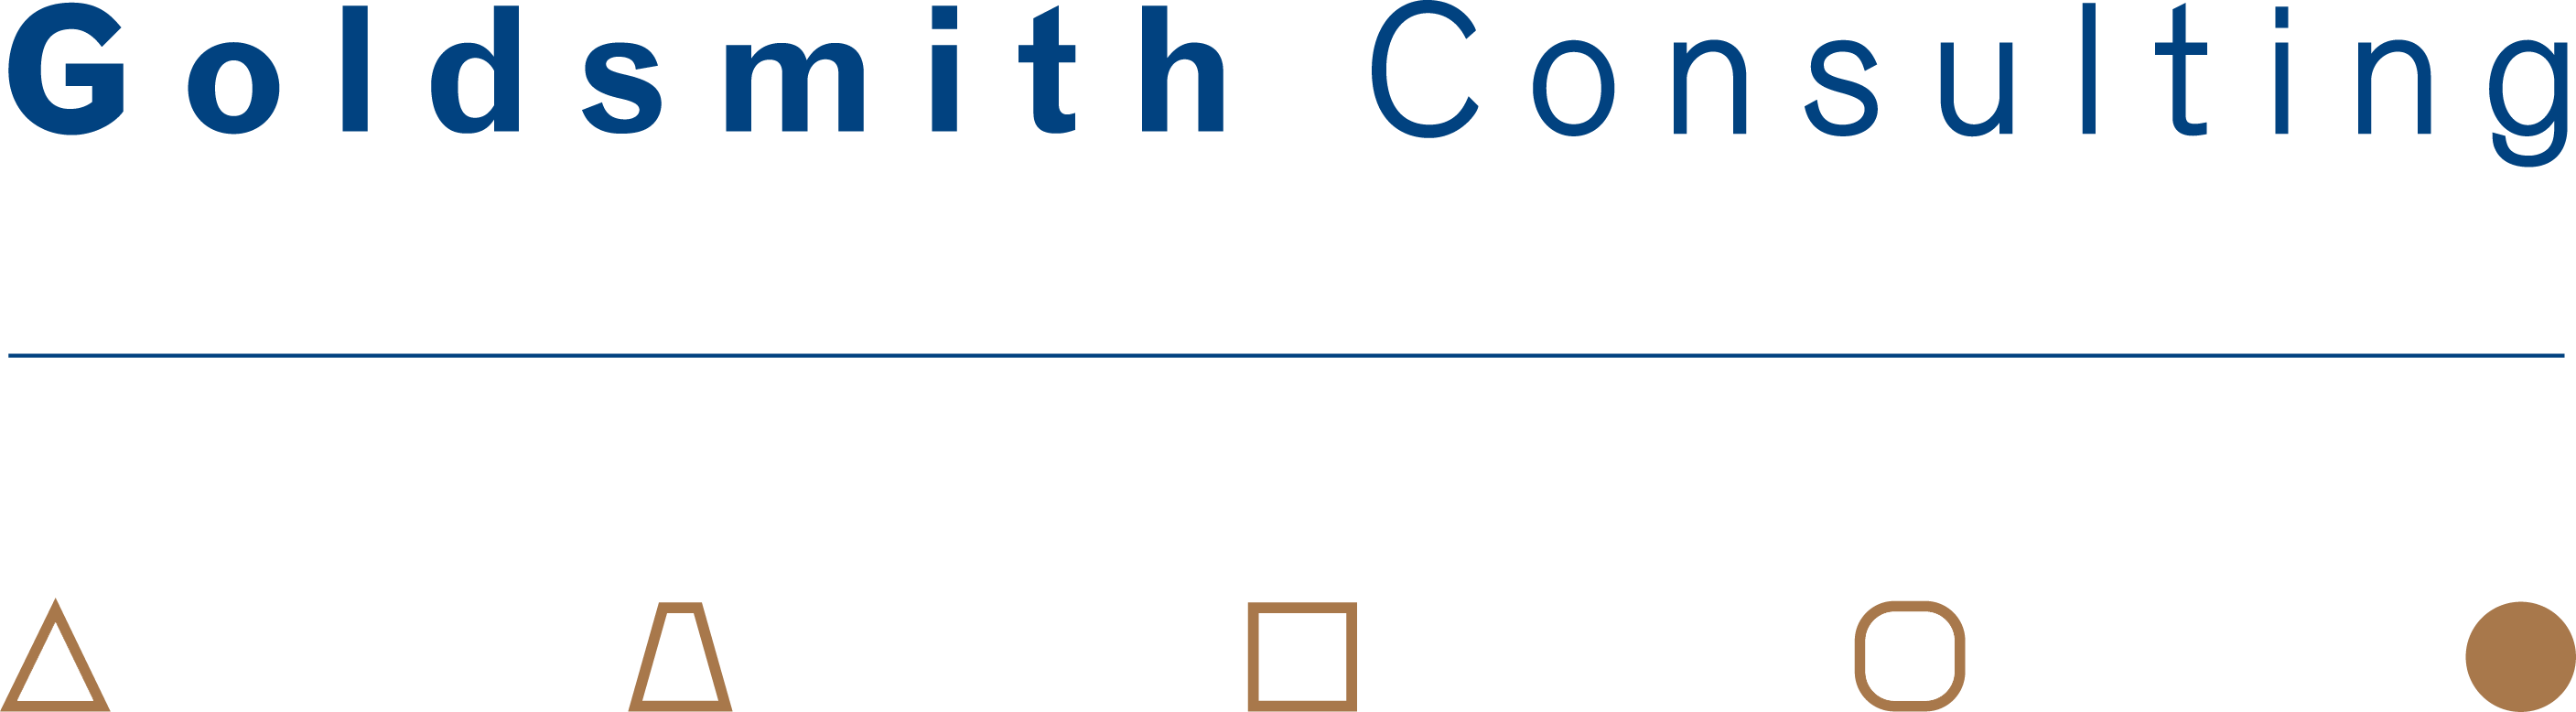 Goldsmith Consulting